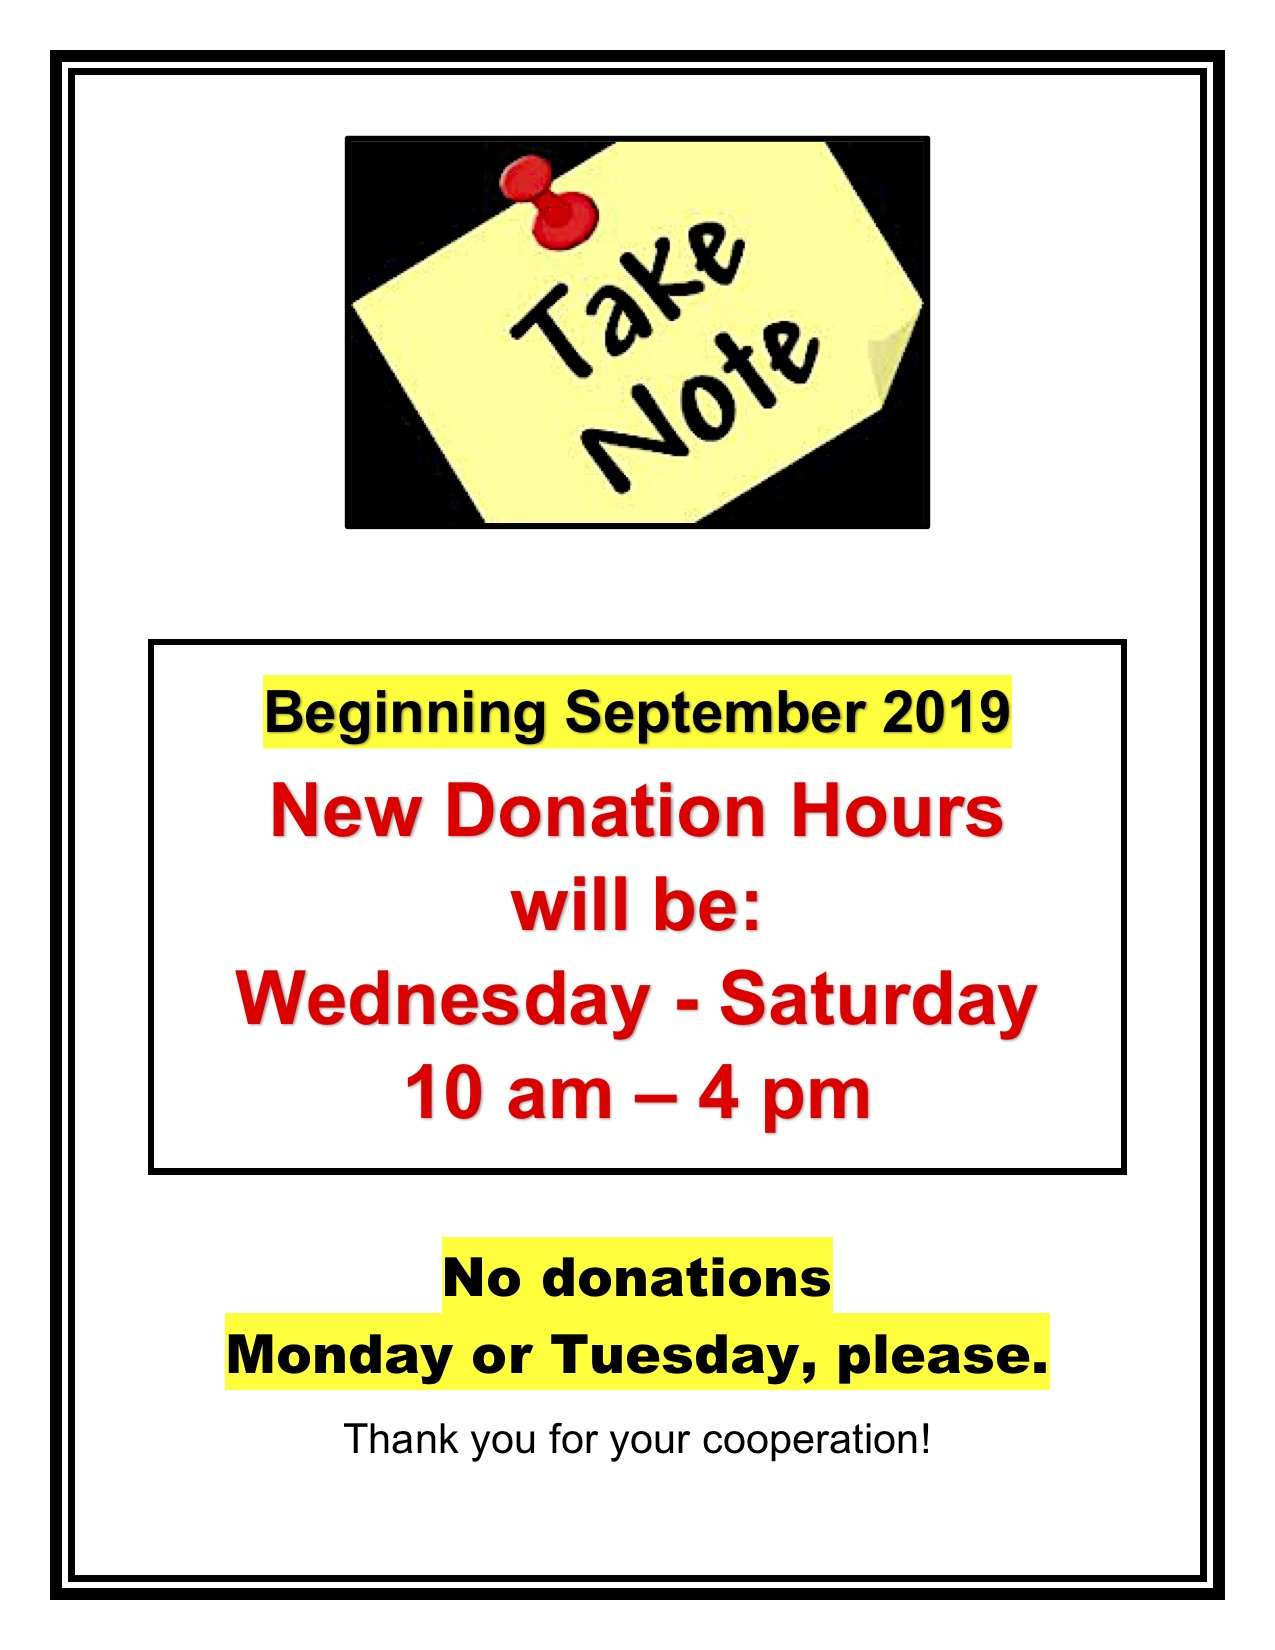 Donation Hours Sept 2019, Wed-Sat 10 am - 5 pm